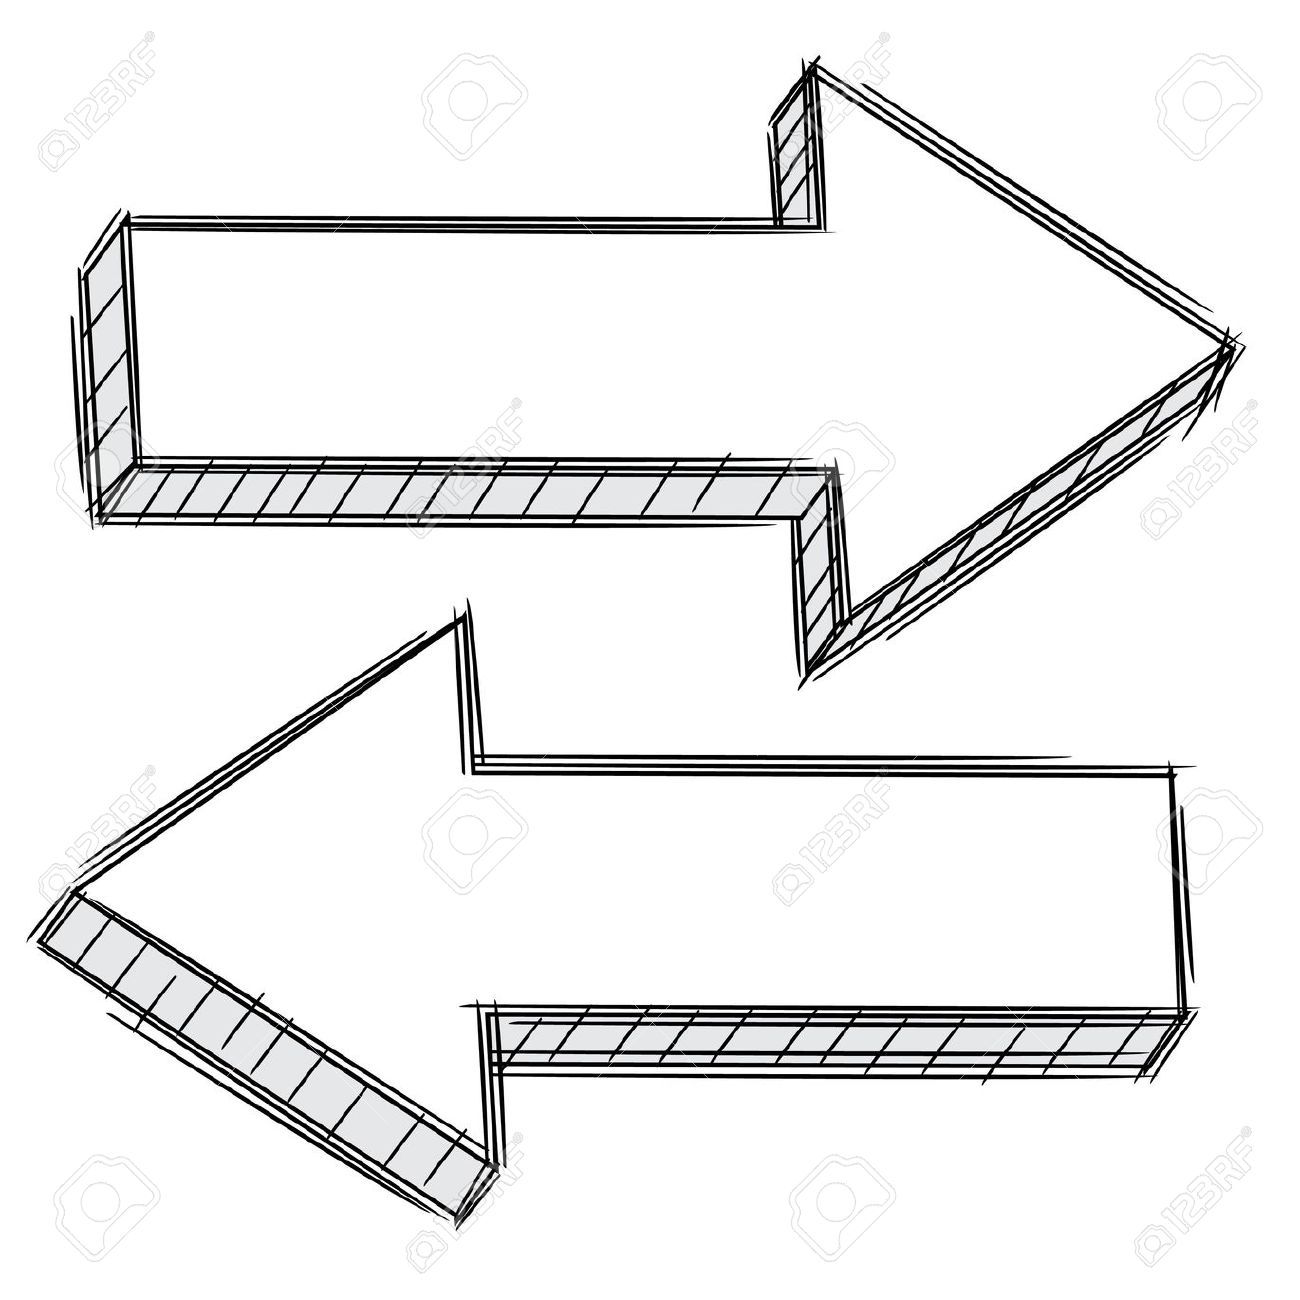 Picture of arrow pointing left clip art royalty free Doodle Of Arrow Pointing Left And Right Royalty Free Cliparts ... clip art royalty free